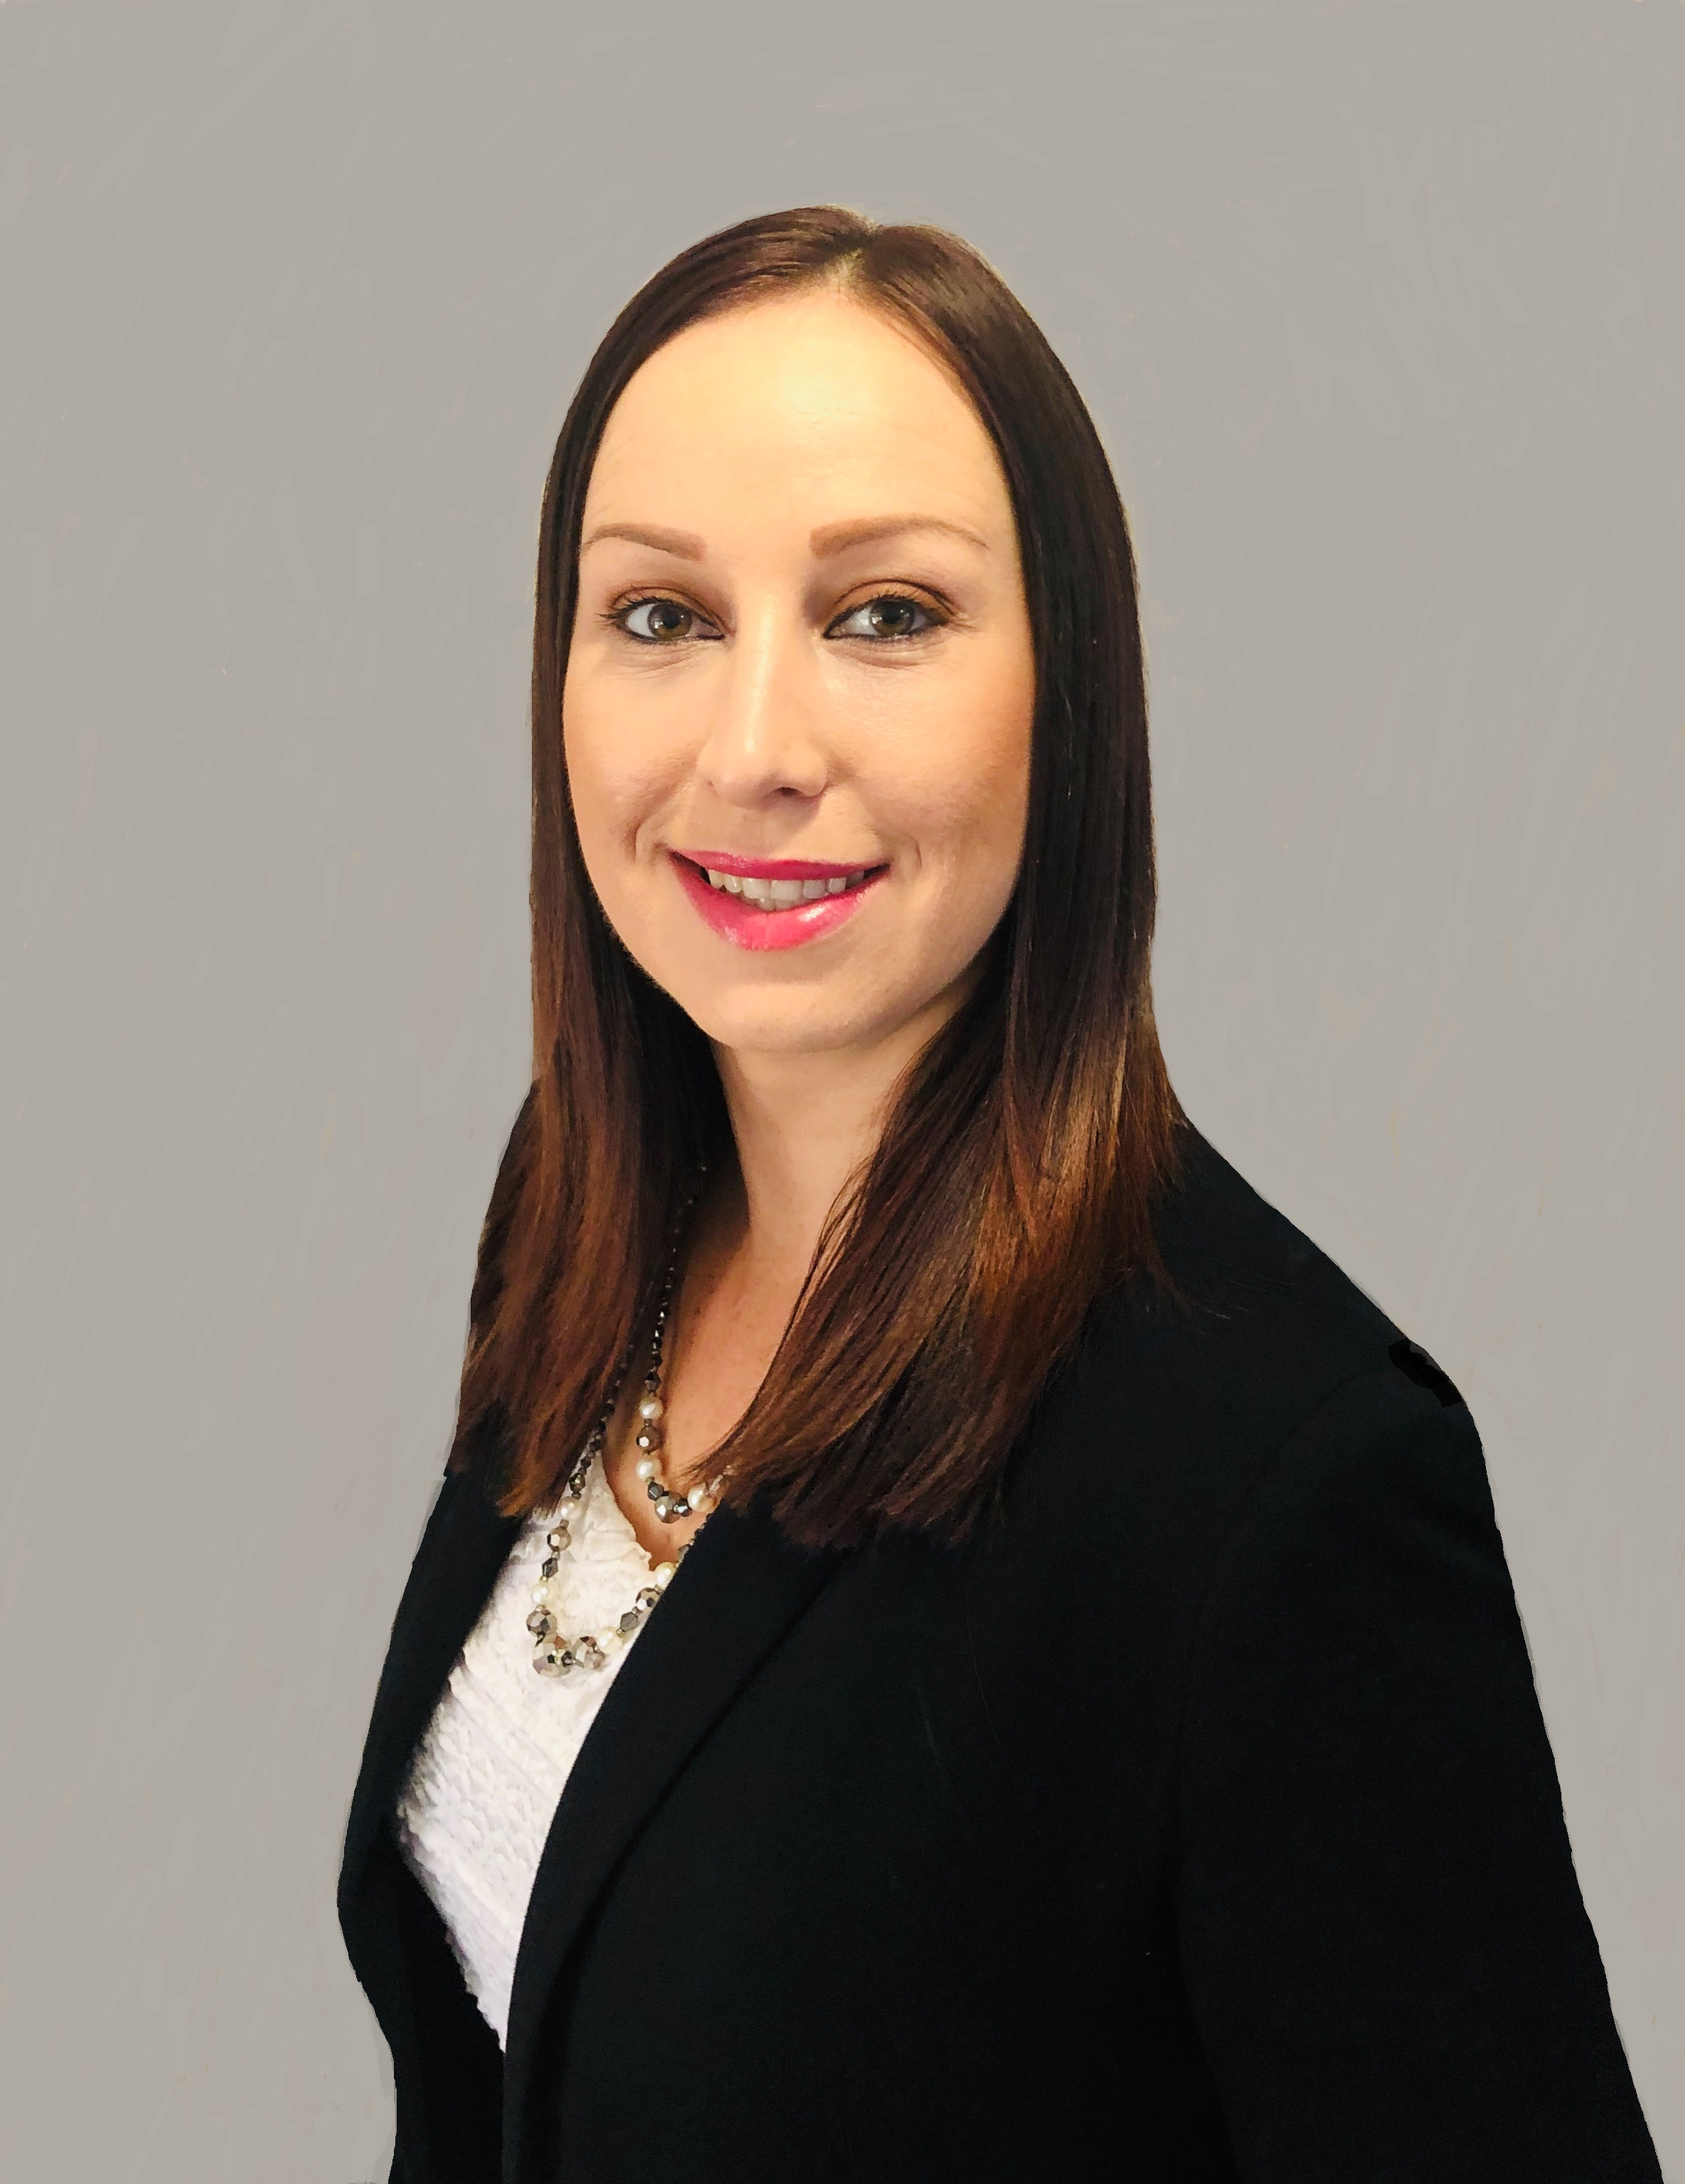 Real Estate Agent - Candice Faye